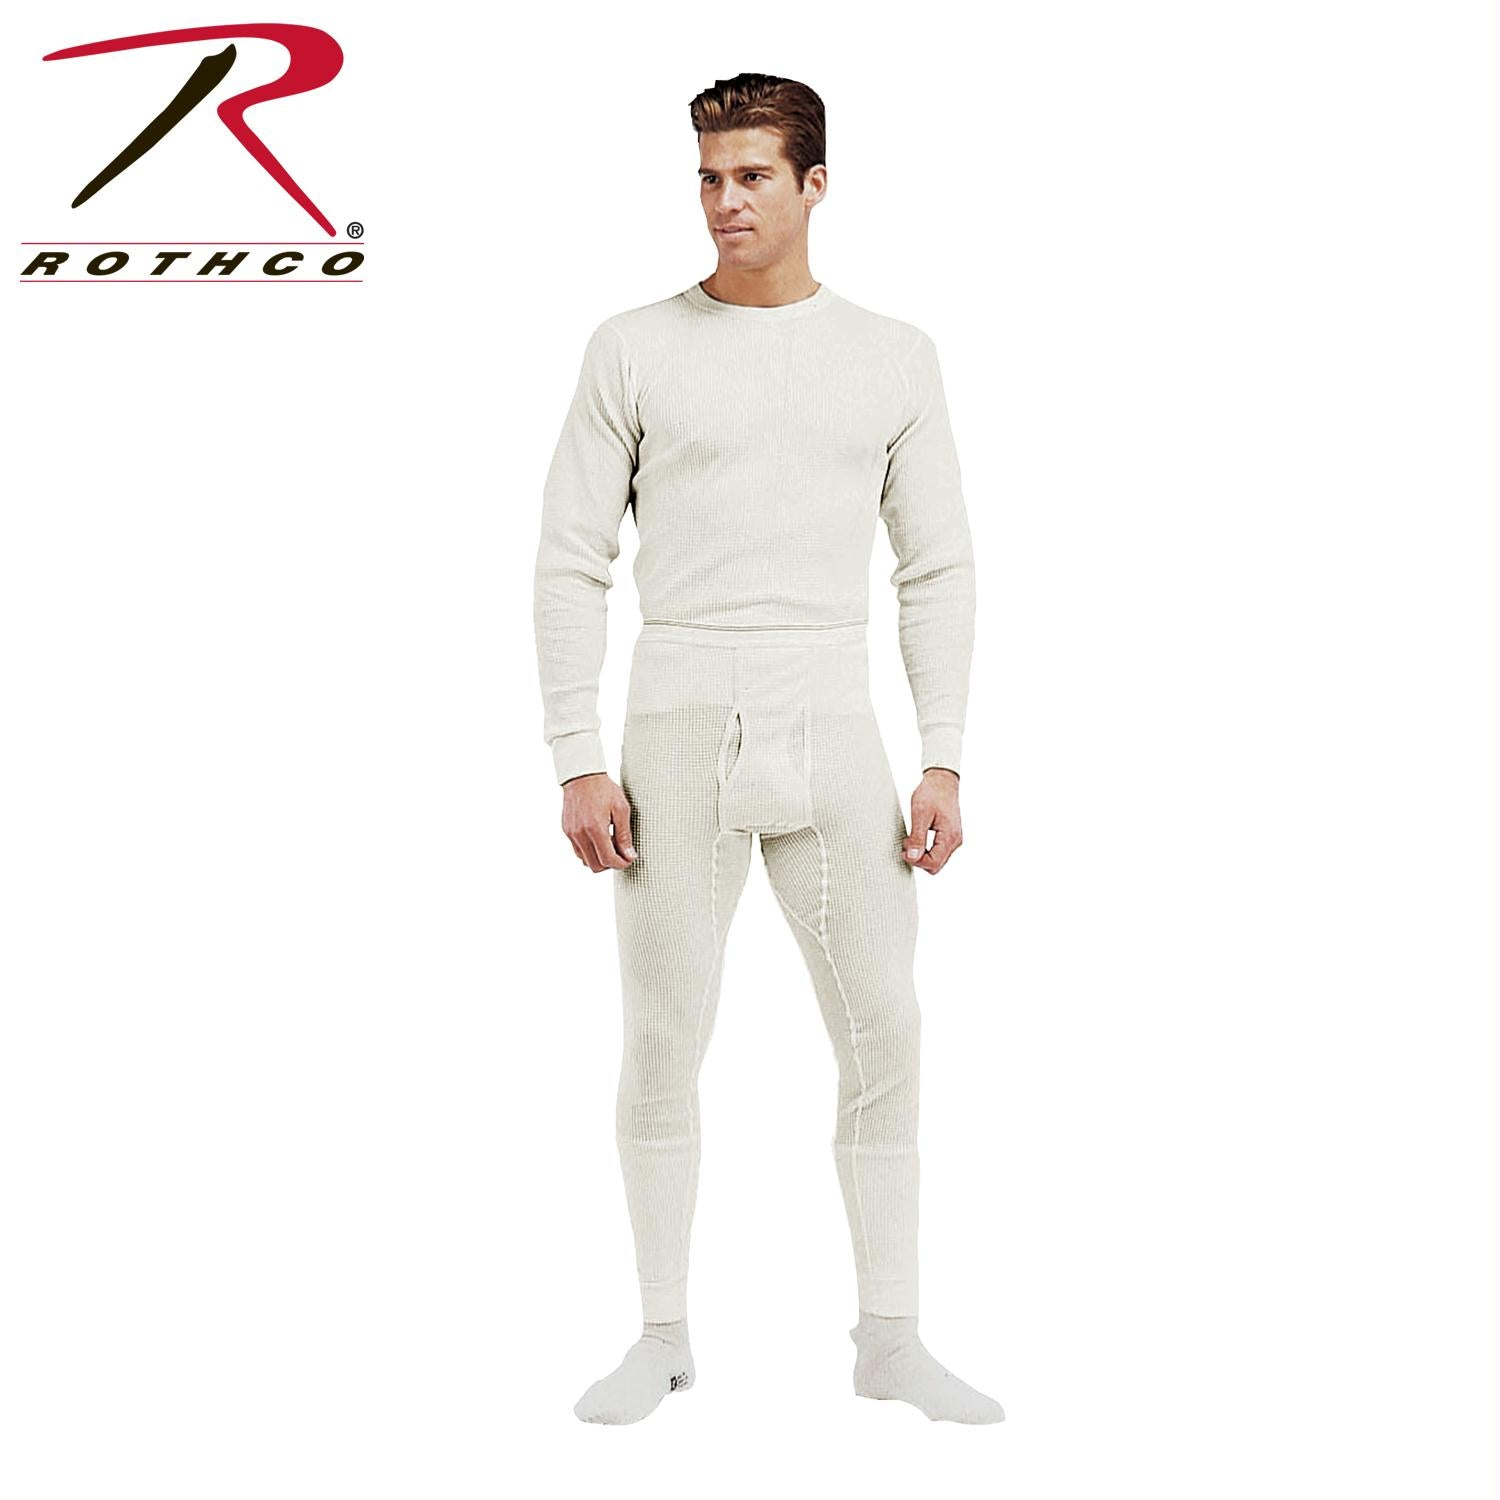 Rothco Thermal Knit Underwear Bottoms - Natural / M